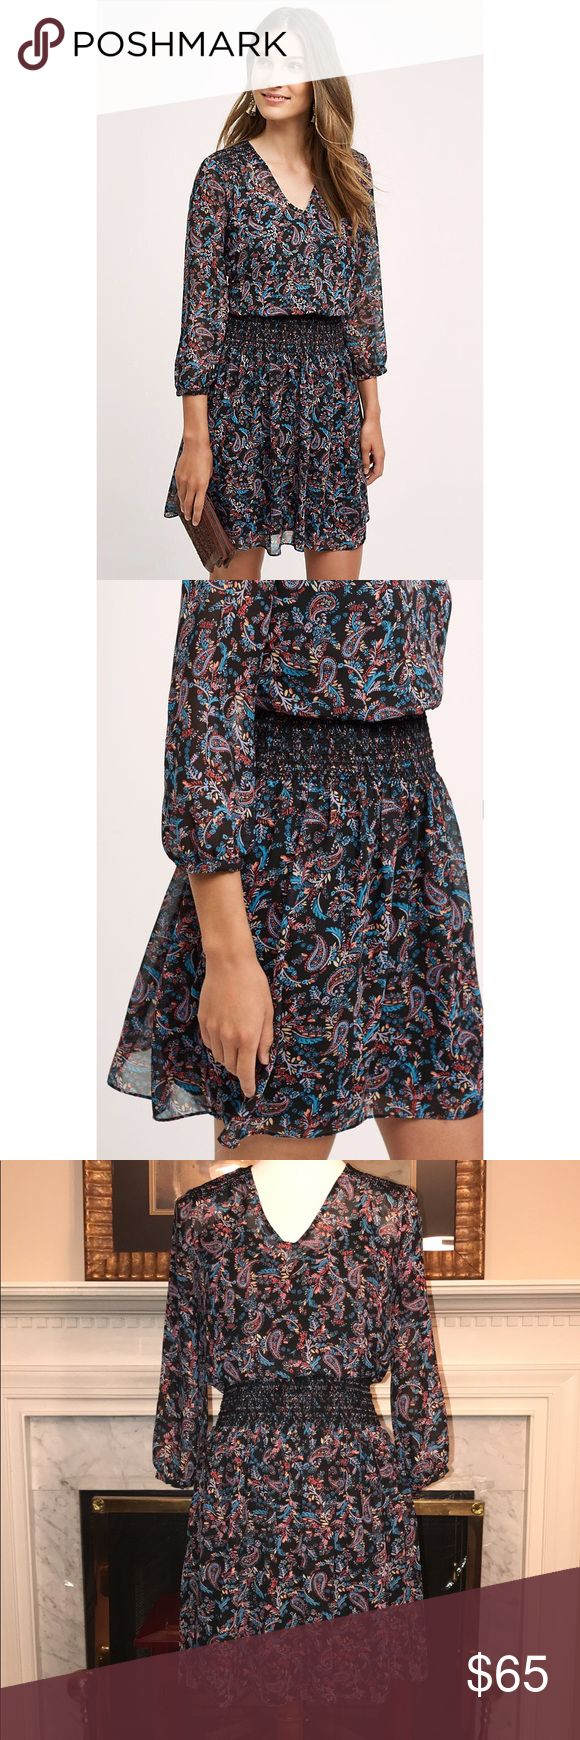 Vanessa Virginia Daytripper Dress Anthro Sz XS Vanessa Virginia Daytripper Dress sold out in stores!! Anthropologie Sz XS. Paisley Floral print. Polyester, rayon lining Smocked waistband Pullover styling Anthropologie Dresses